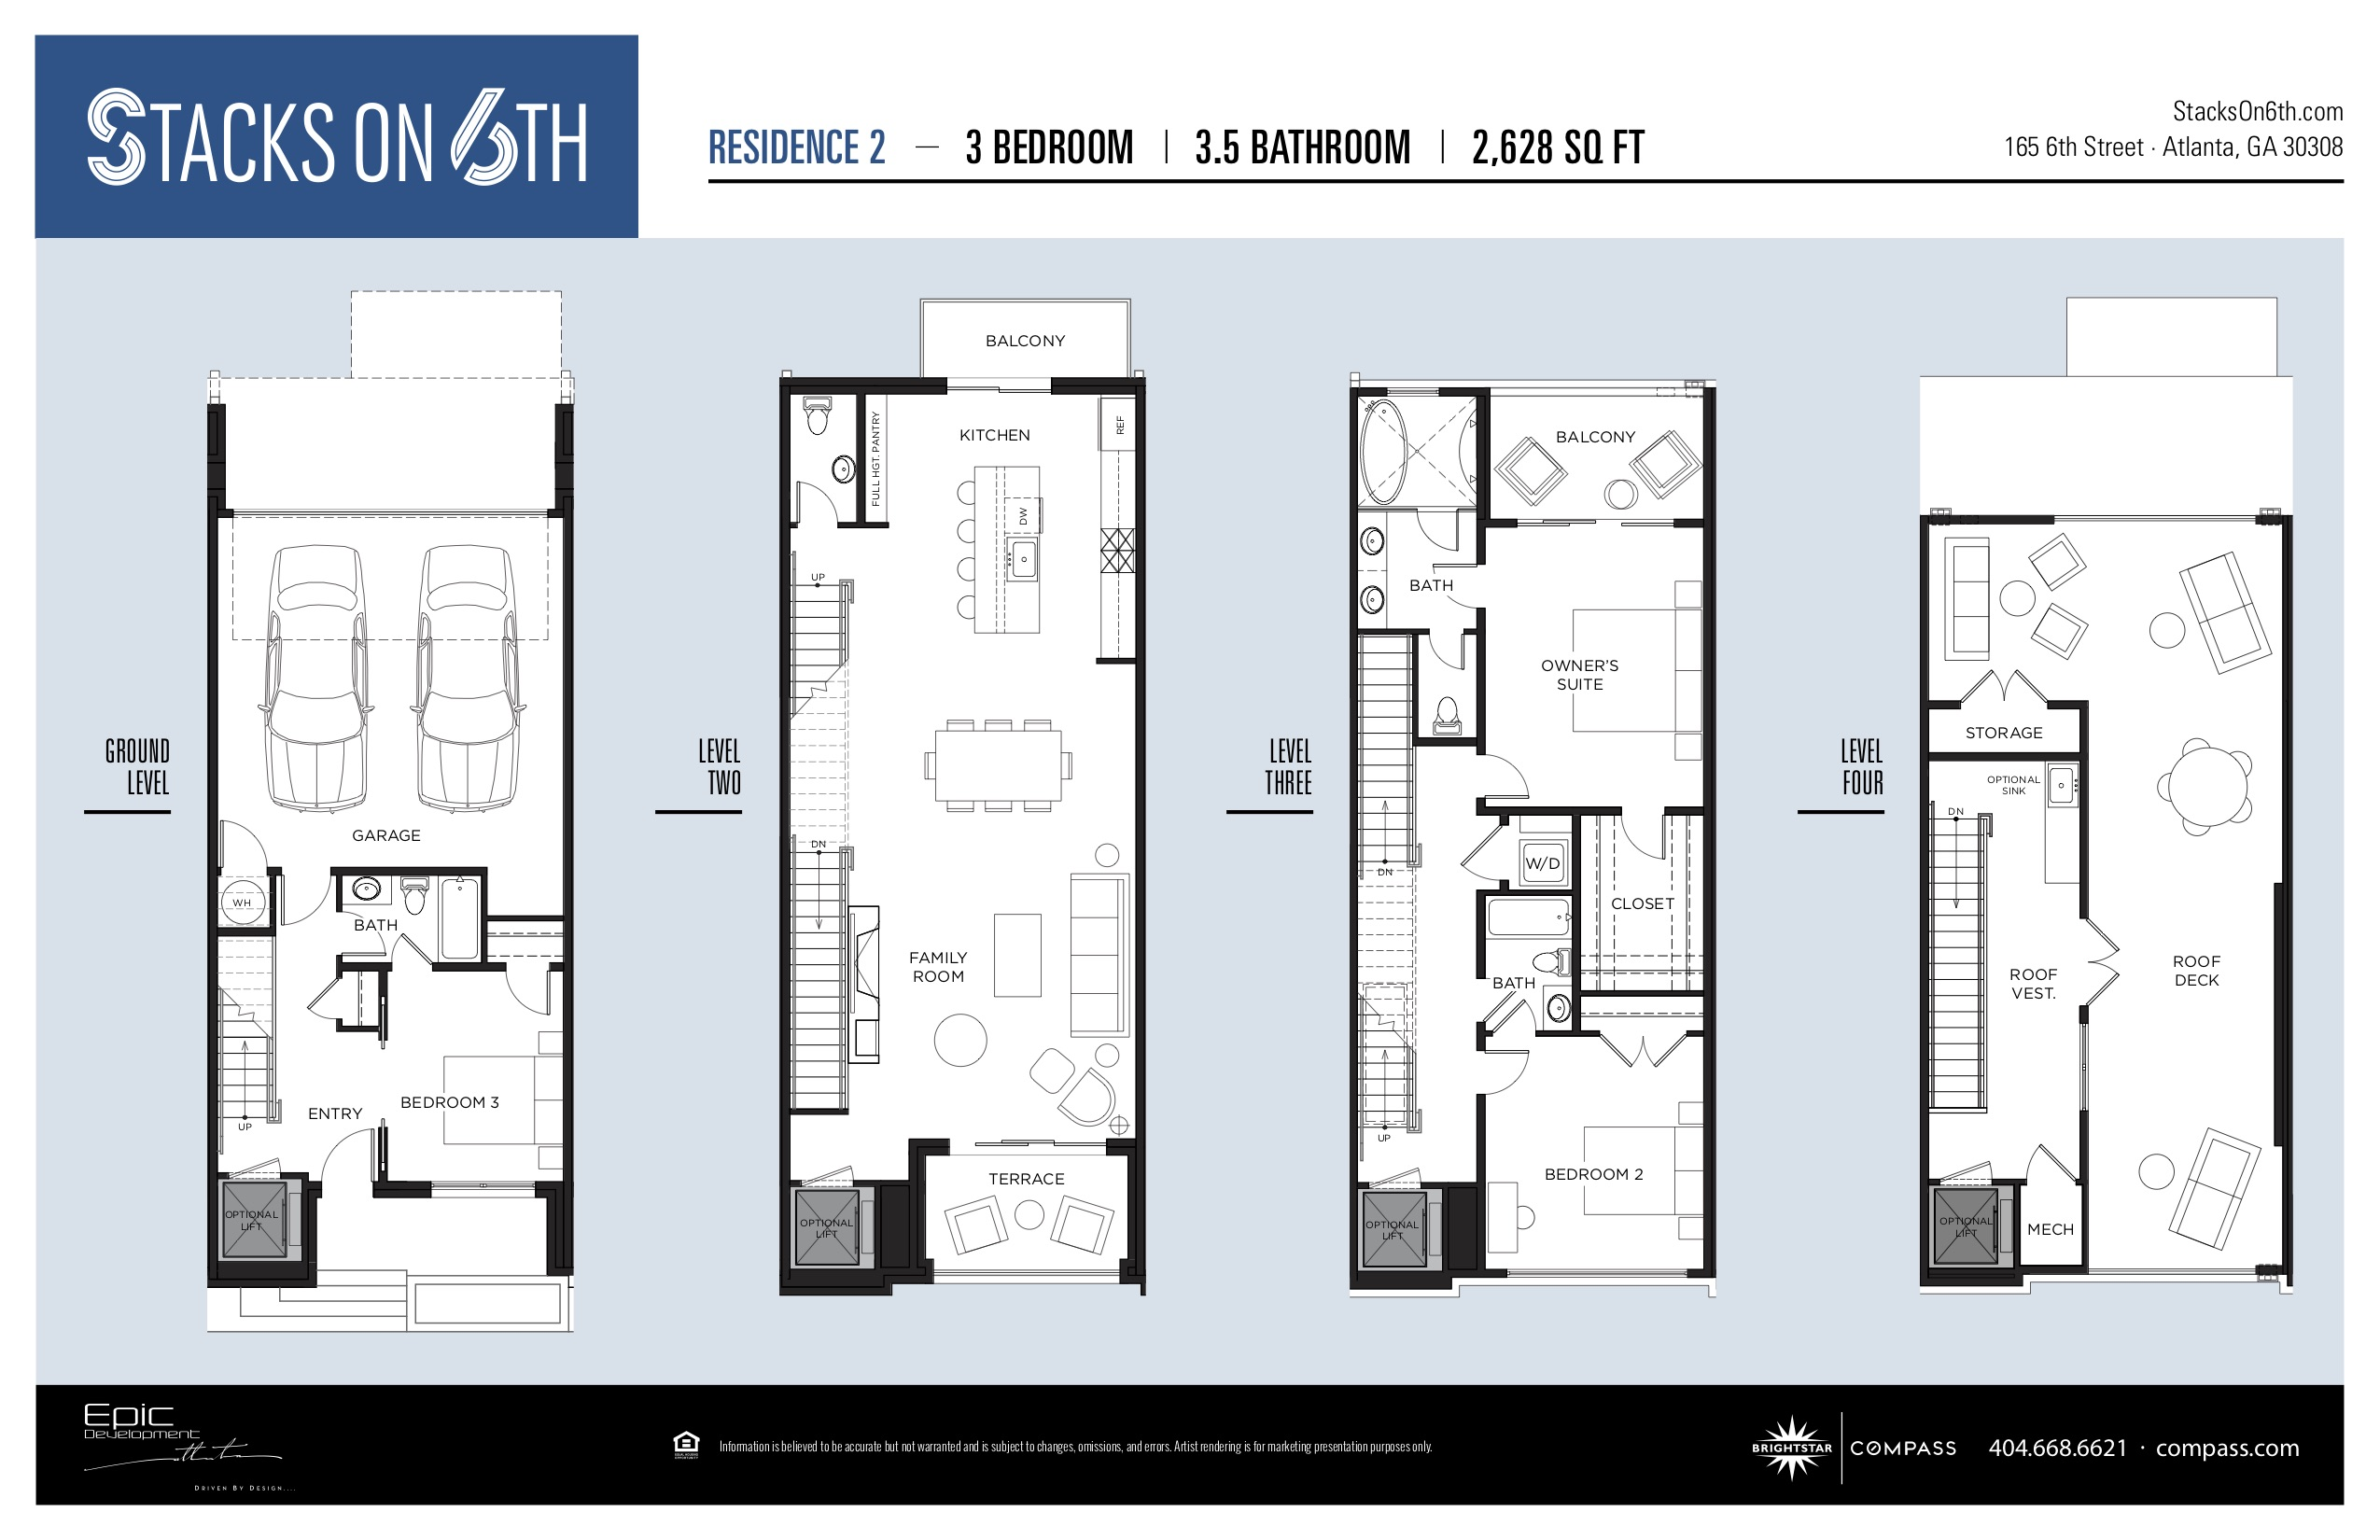 BST3236 Stacks On 6th Floor Plan_11.05